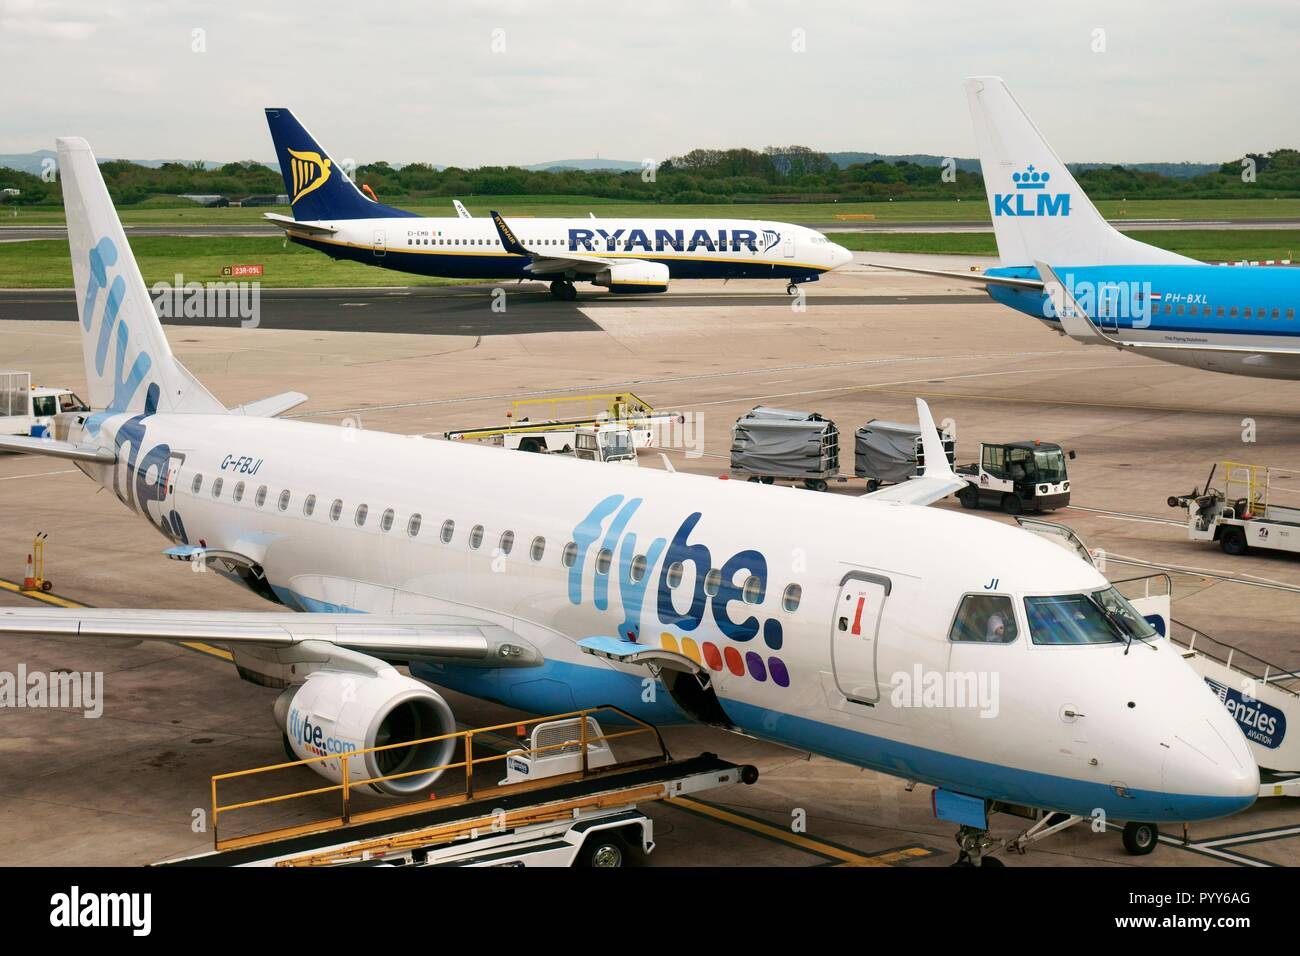 Flybe, Ryanair and KLM passenger plane jet aircraft airplane on runway apron seen from boarding gates of Manchester Airport Terminal Building, England Stock Photo